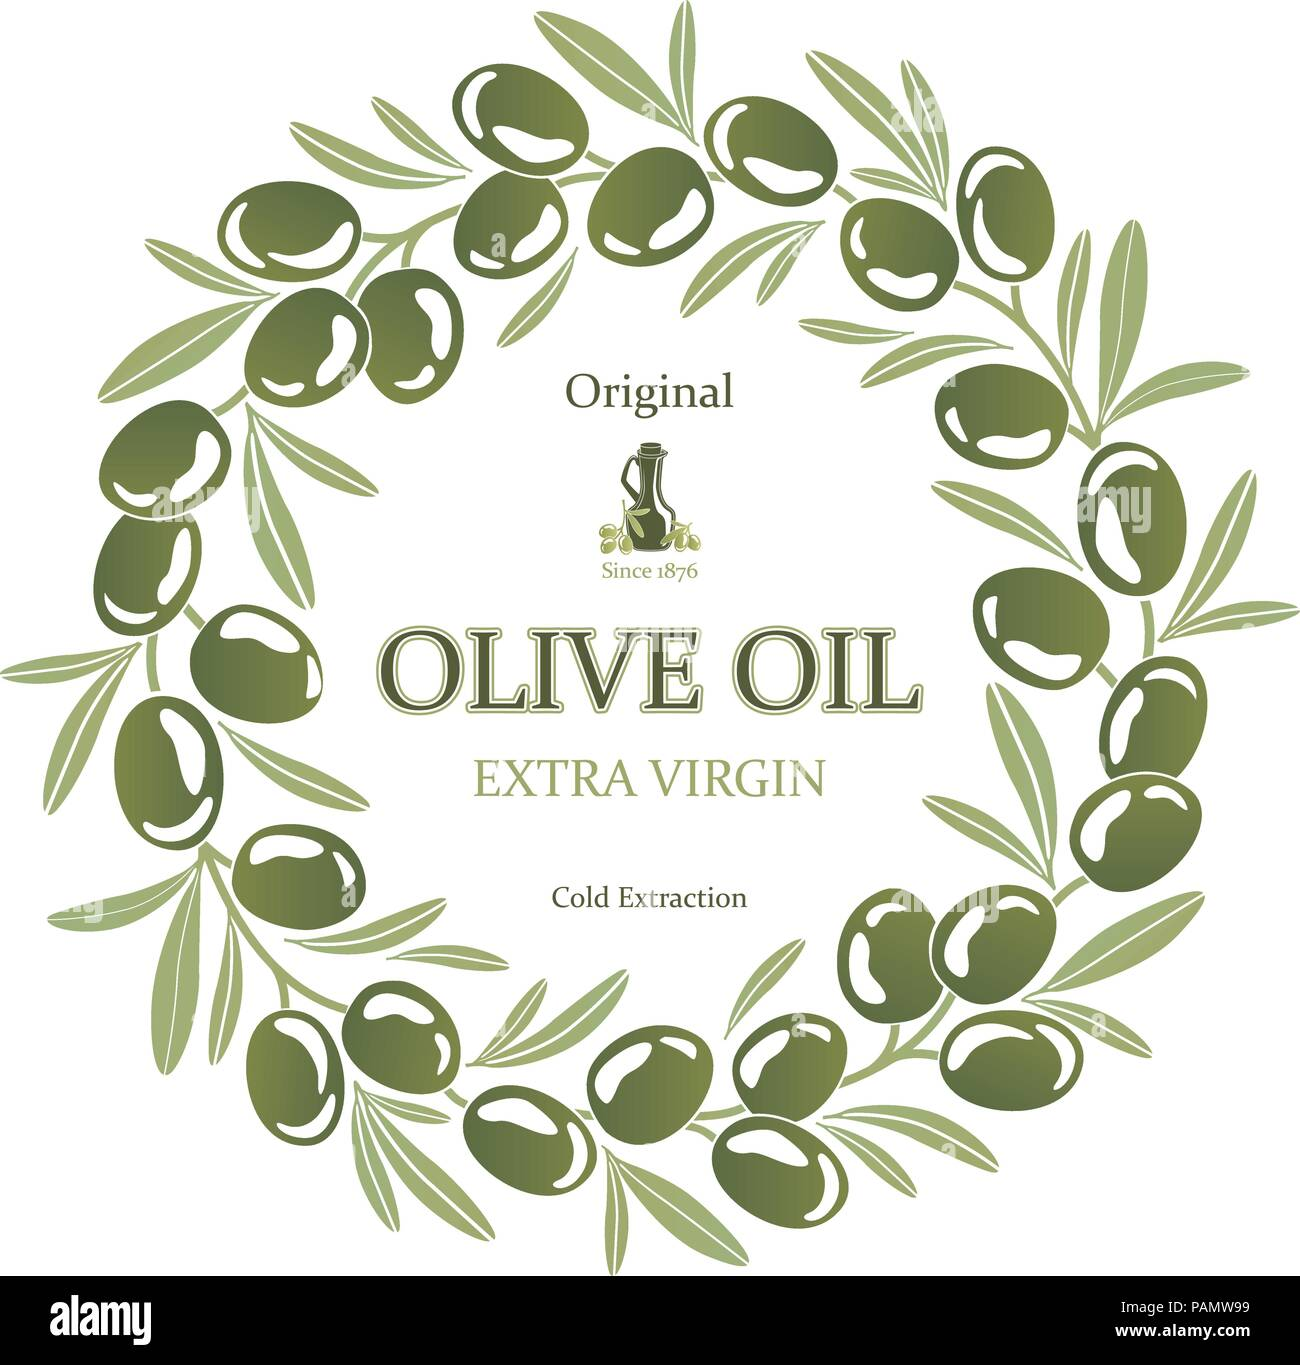 Label for olive oil wreath of green olives - Stock Image